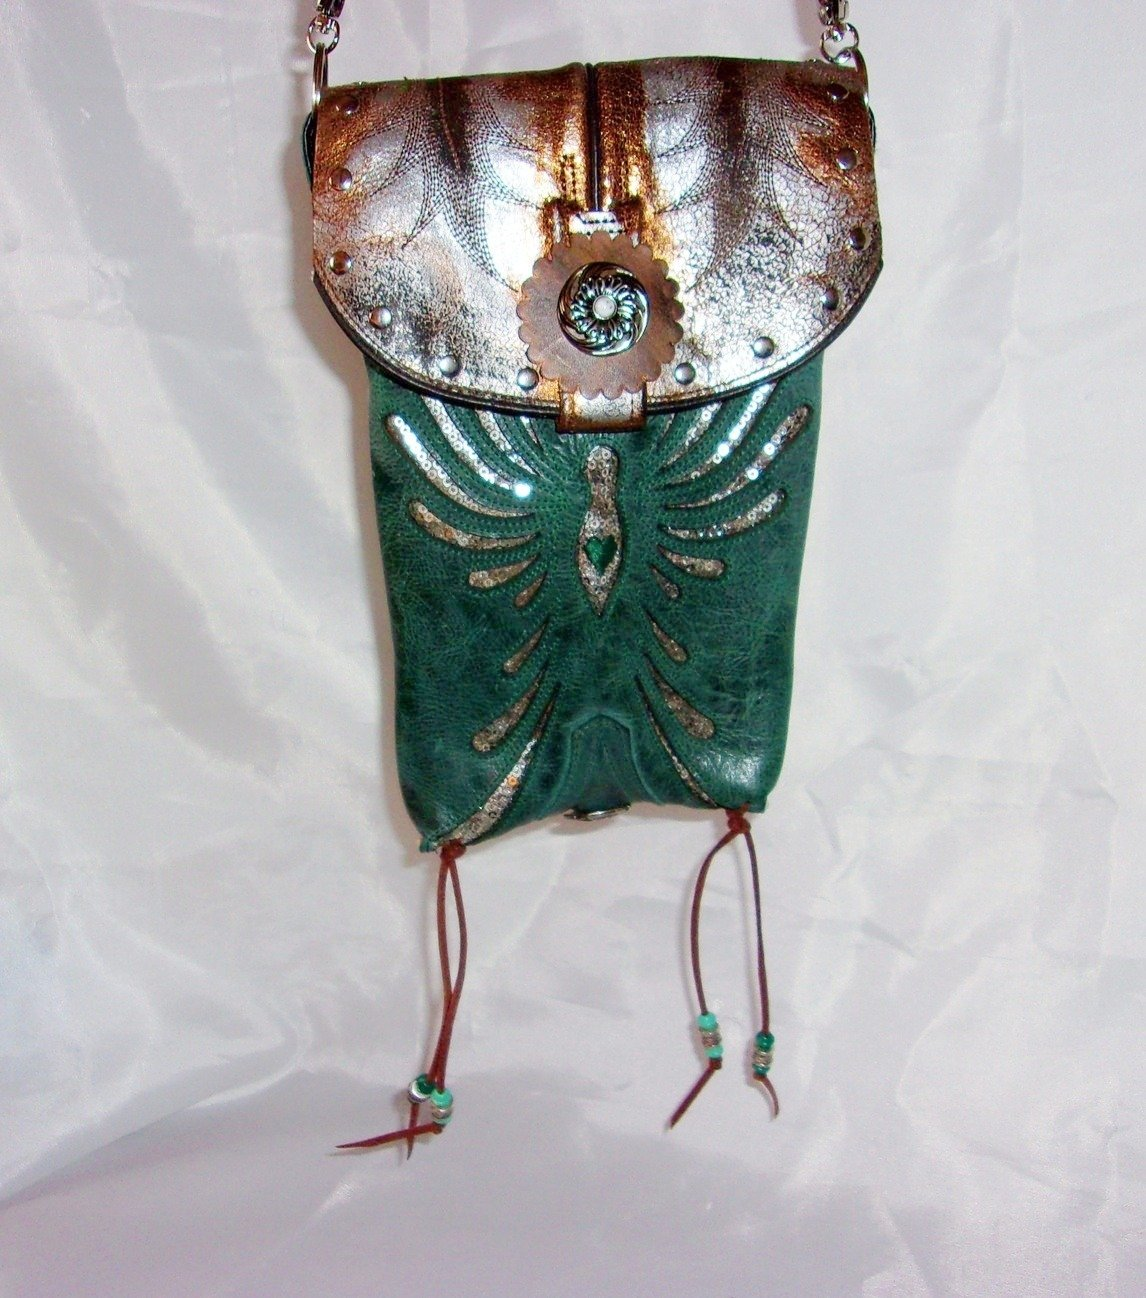 Teal and Silver Cross-Body Leather Hipster HP701 - Cowboy Boot Purses by Chris Thompson for Distinctive Western Fashion